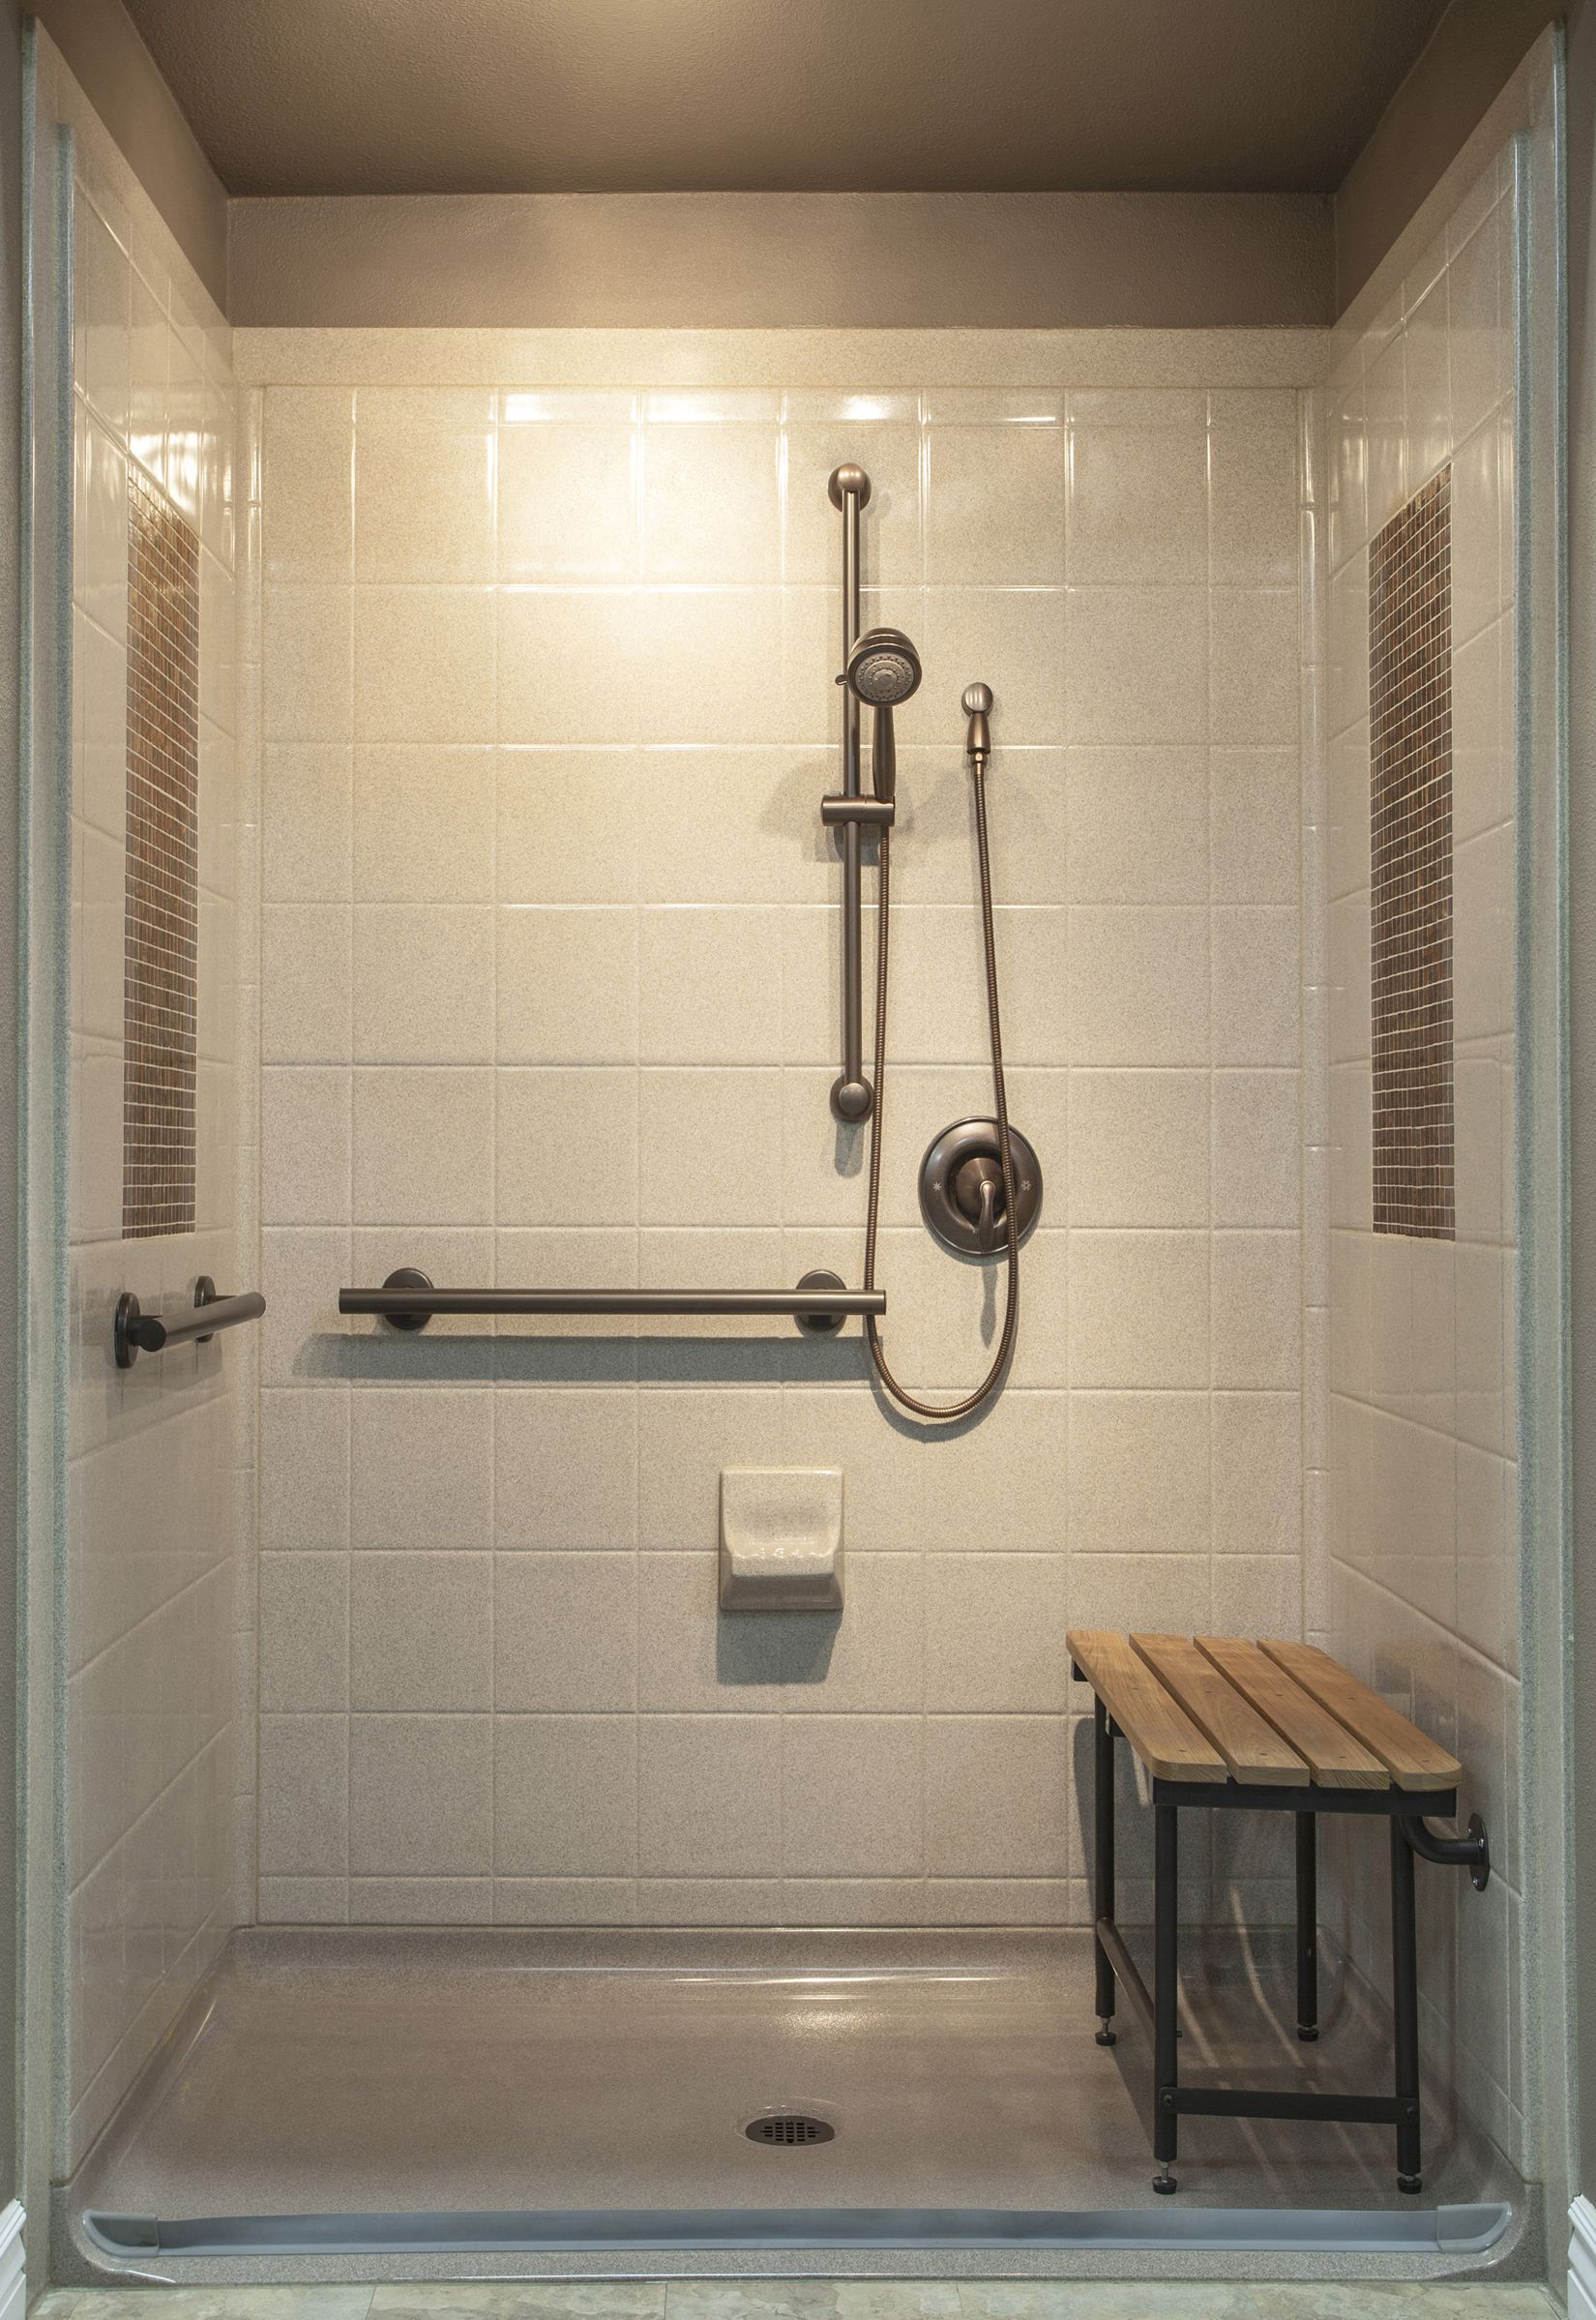 Americans with disabilities act ada coastal bath and kitchen - Custom Walk In Showers Available At Custom Bath Solutions Are Low Maintenance And Safe For Anyone